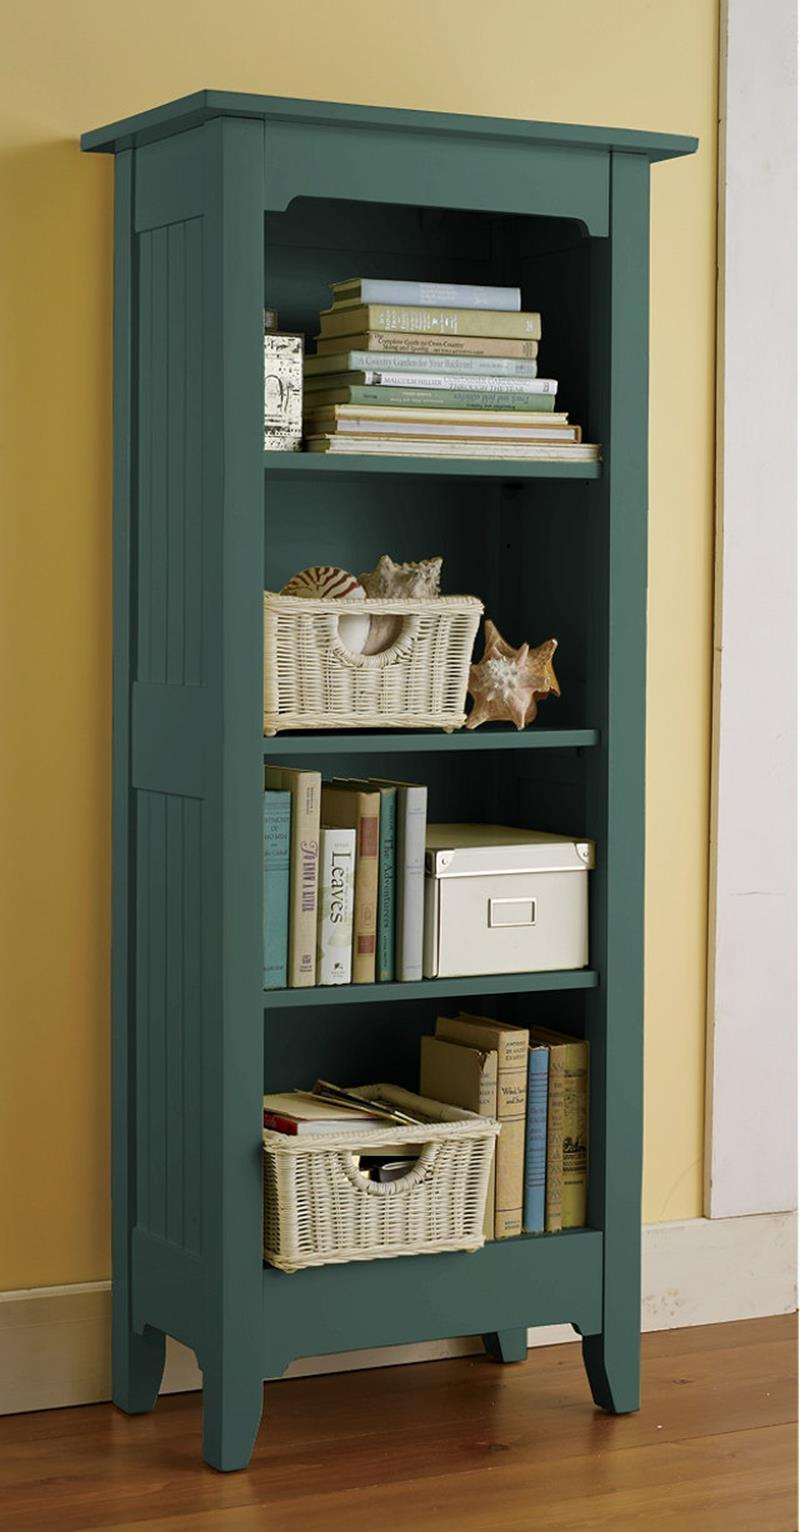 Perfect Bookshelves For Small Spaces and Decor Ideas 12